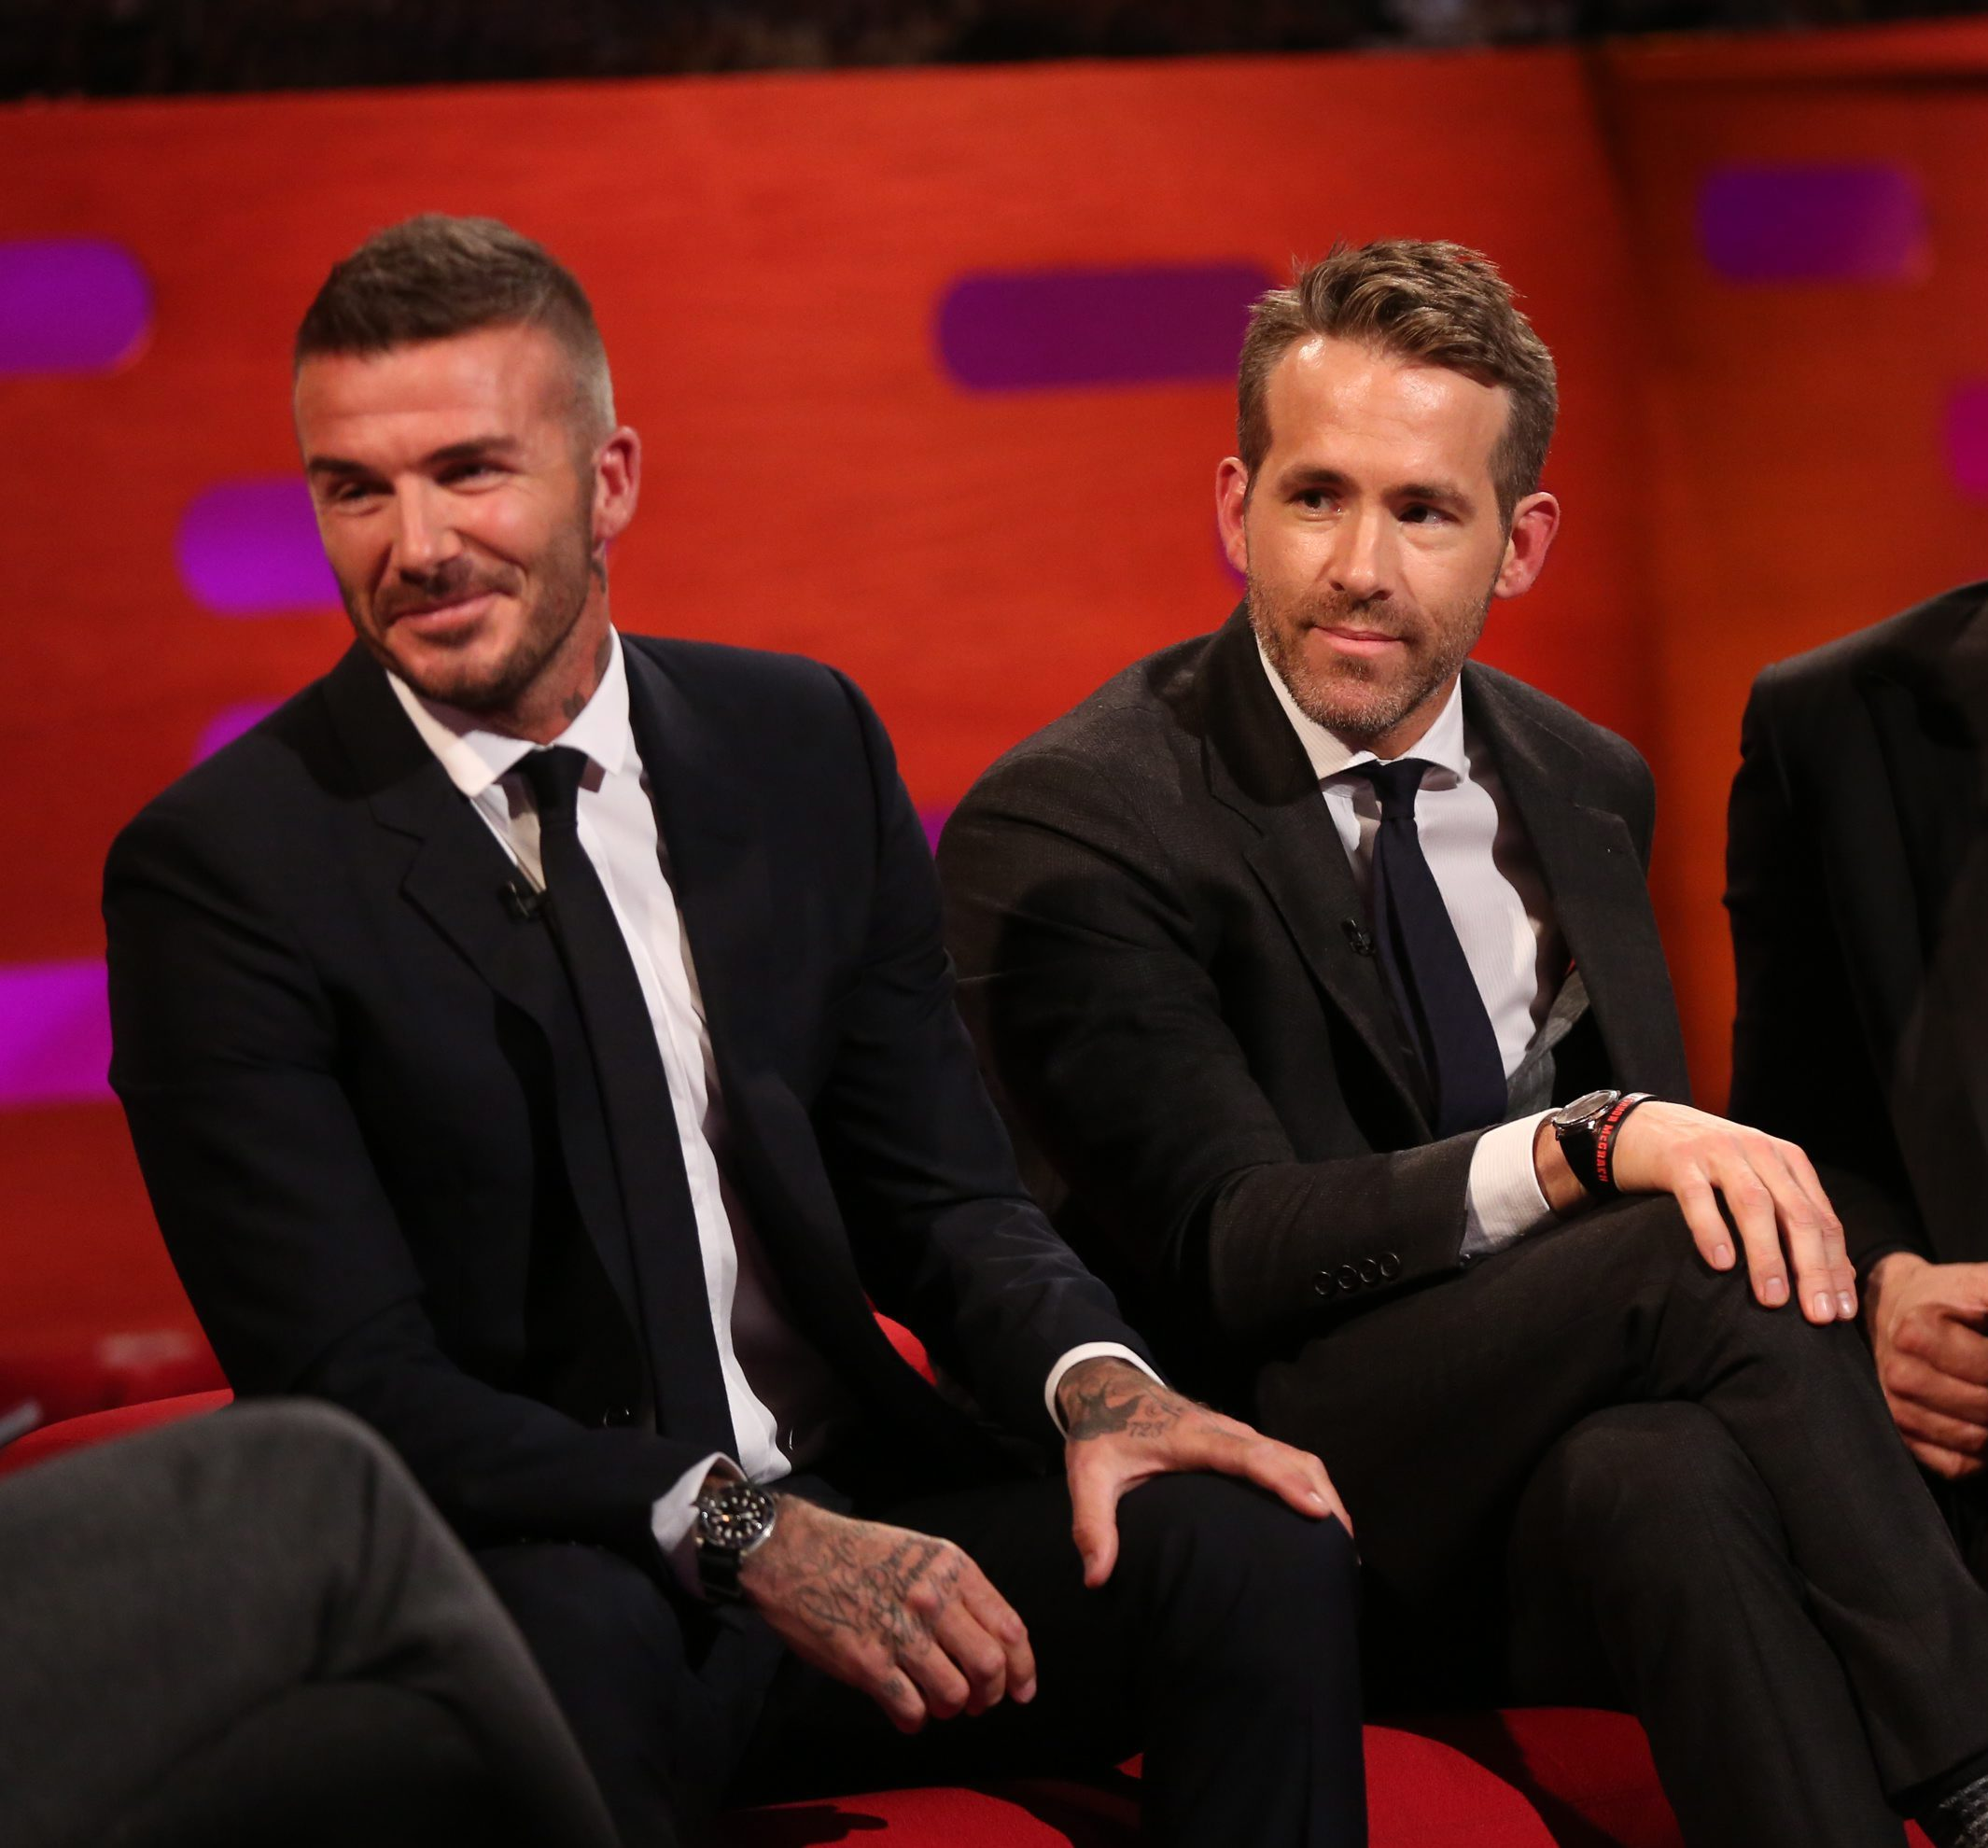 Ryan Reynolds Responds To David Beckham With R-Rated Comment